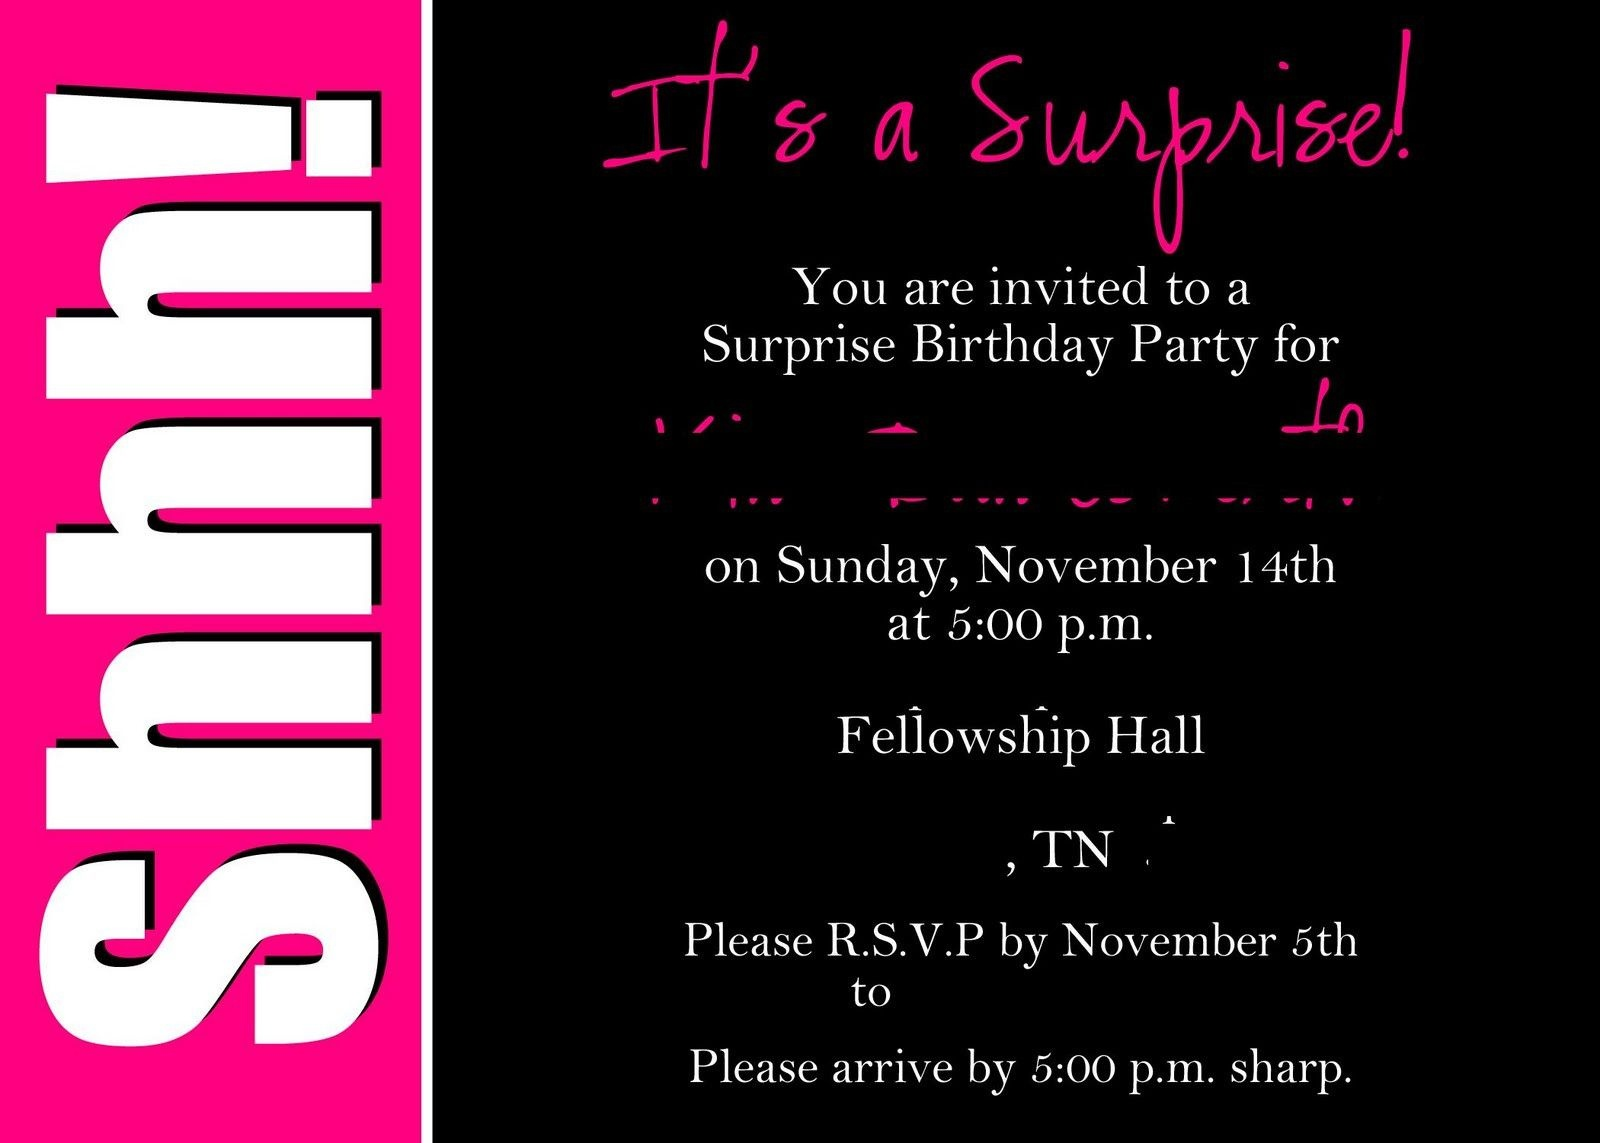 40Th Surprise Birthday Party Invitations | Free Printable Birthday - Free Printable Surprise 40Th Birthday Party Invitations